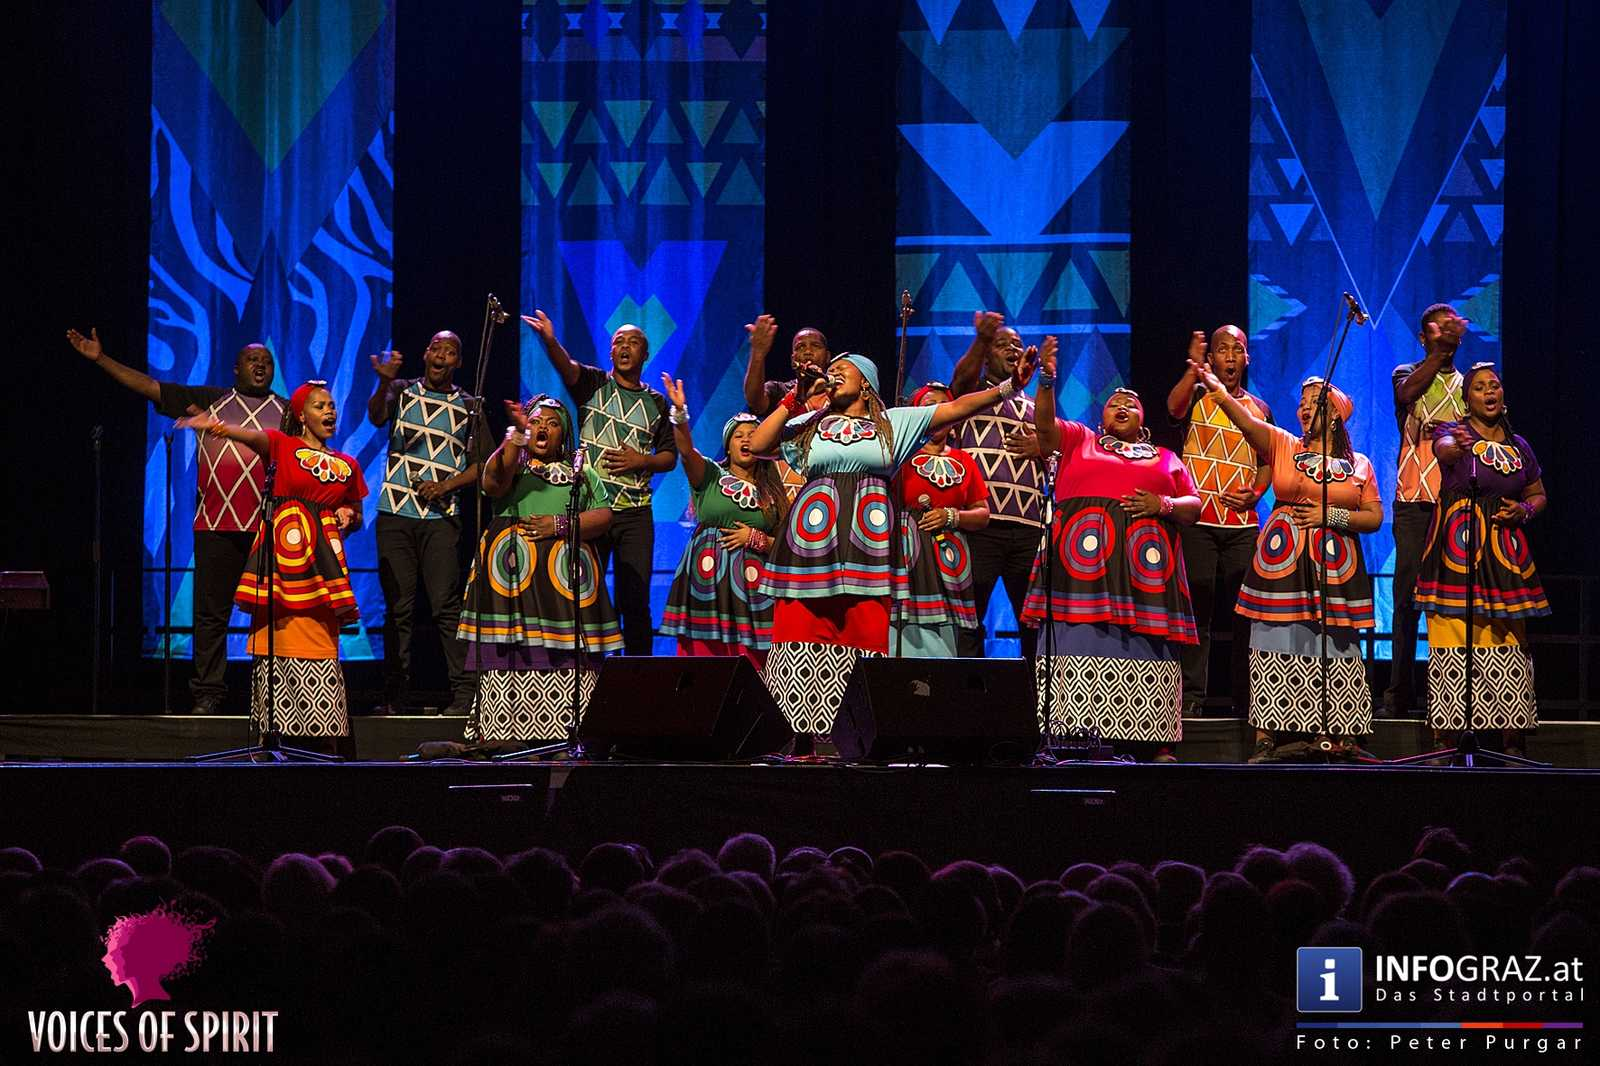 soweto gospel choir internationales chorfestival statdthalle graz voices of spirit eroeffnung festivals 2016 011